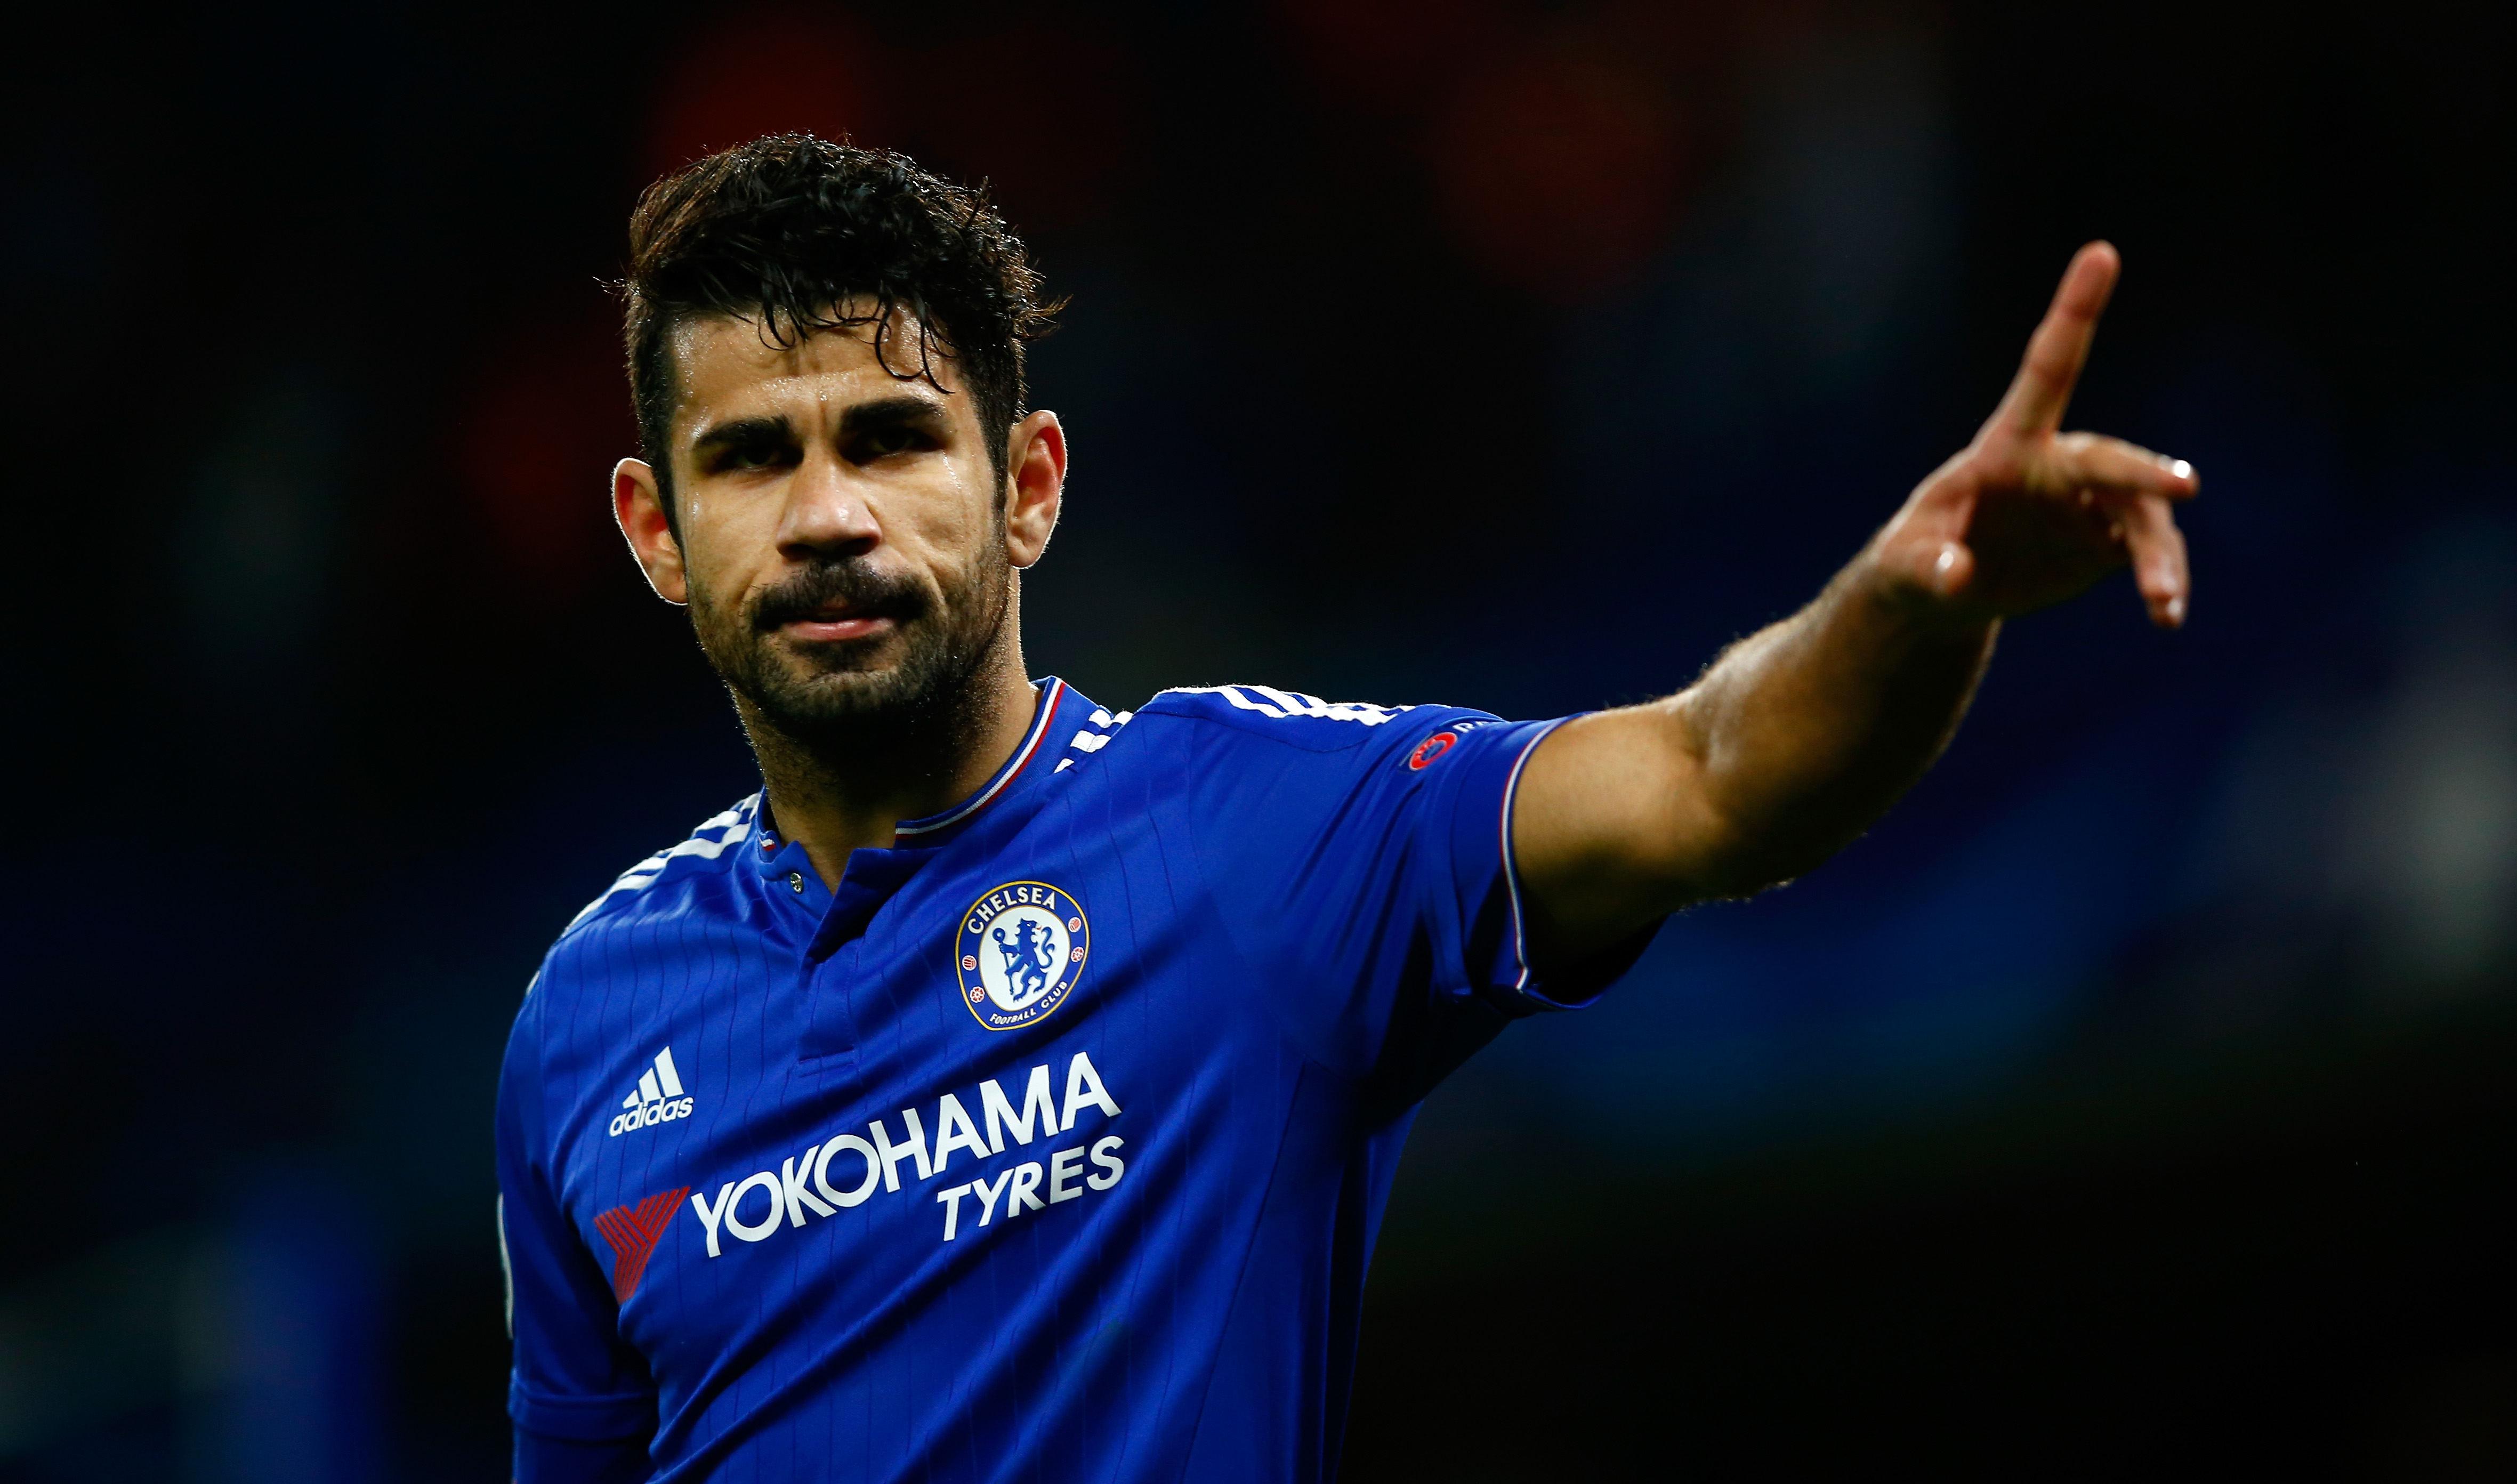 LONDON, ENGLAND - DECEMBER 09: Diego Costa of Chelsea celebrates the first Chelsea goal during the UEFA Champions League Group G match between Chelsea FC and FC Porto at Stamford Bridge on December 9, 2015 in London, United Kingdom. (Photo by Clive Rose/Getty Images)